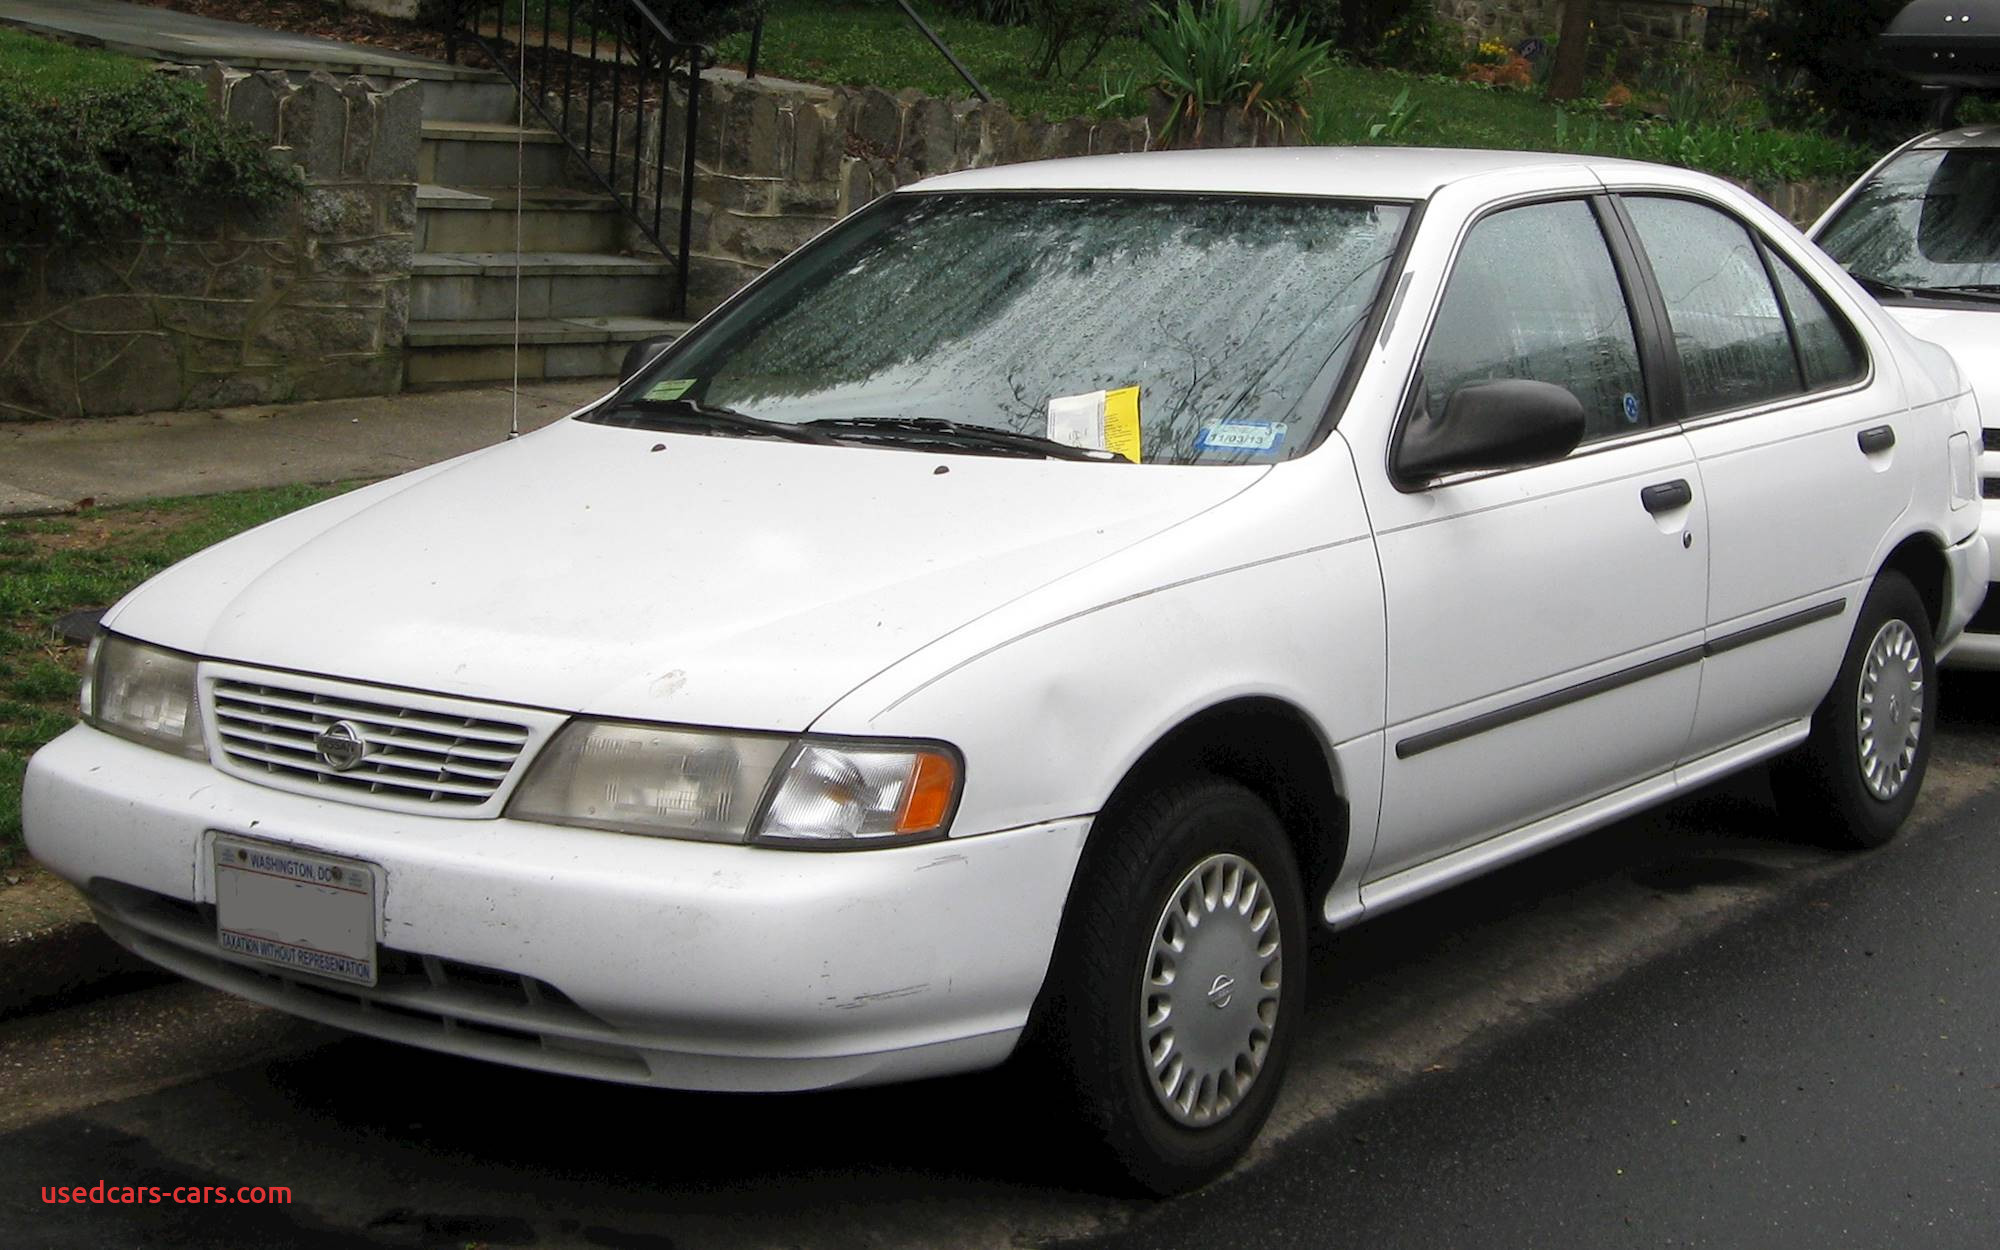 Nissan Sentra 1993 Lovely 1993 Nissan Sentra Xe 2dr Coupe 5 Spd Manual W Od